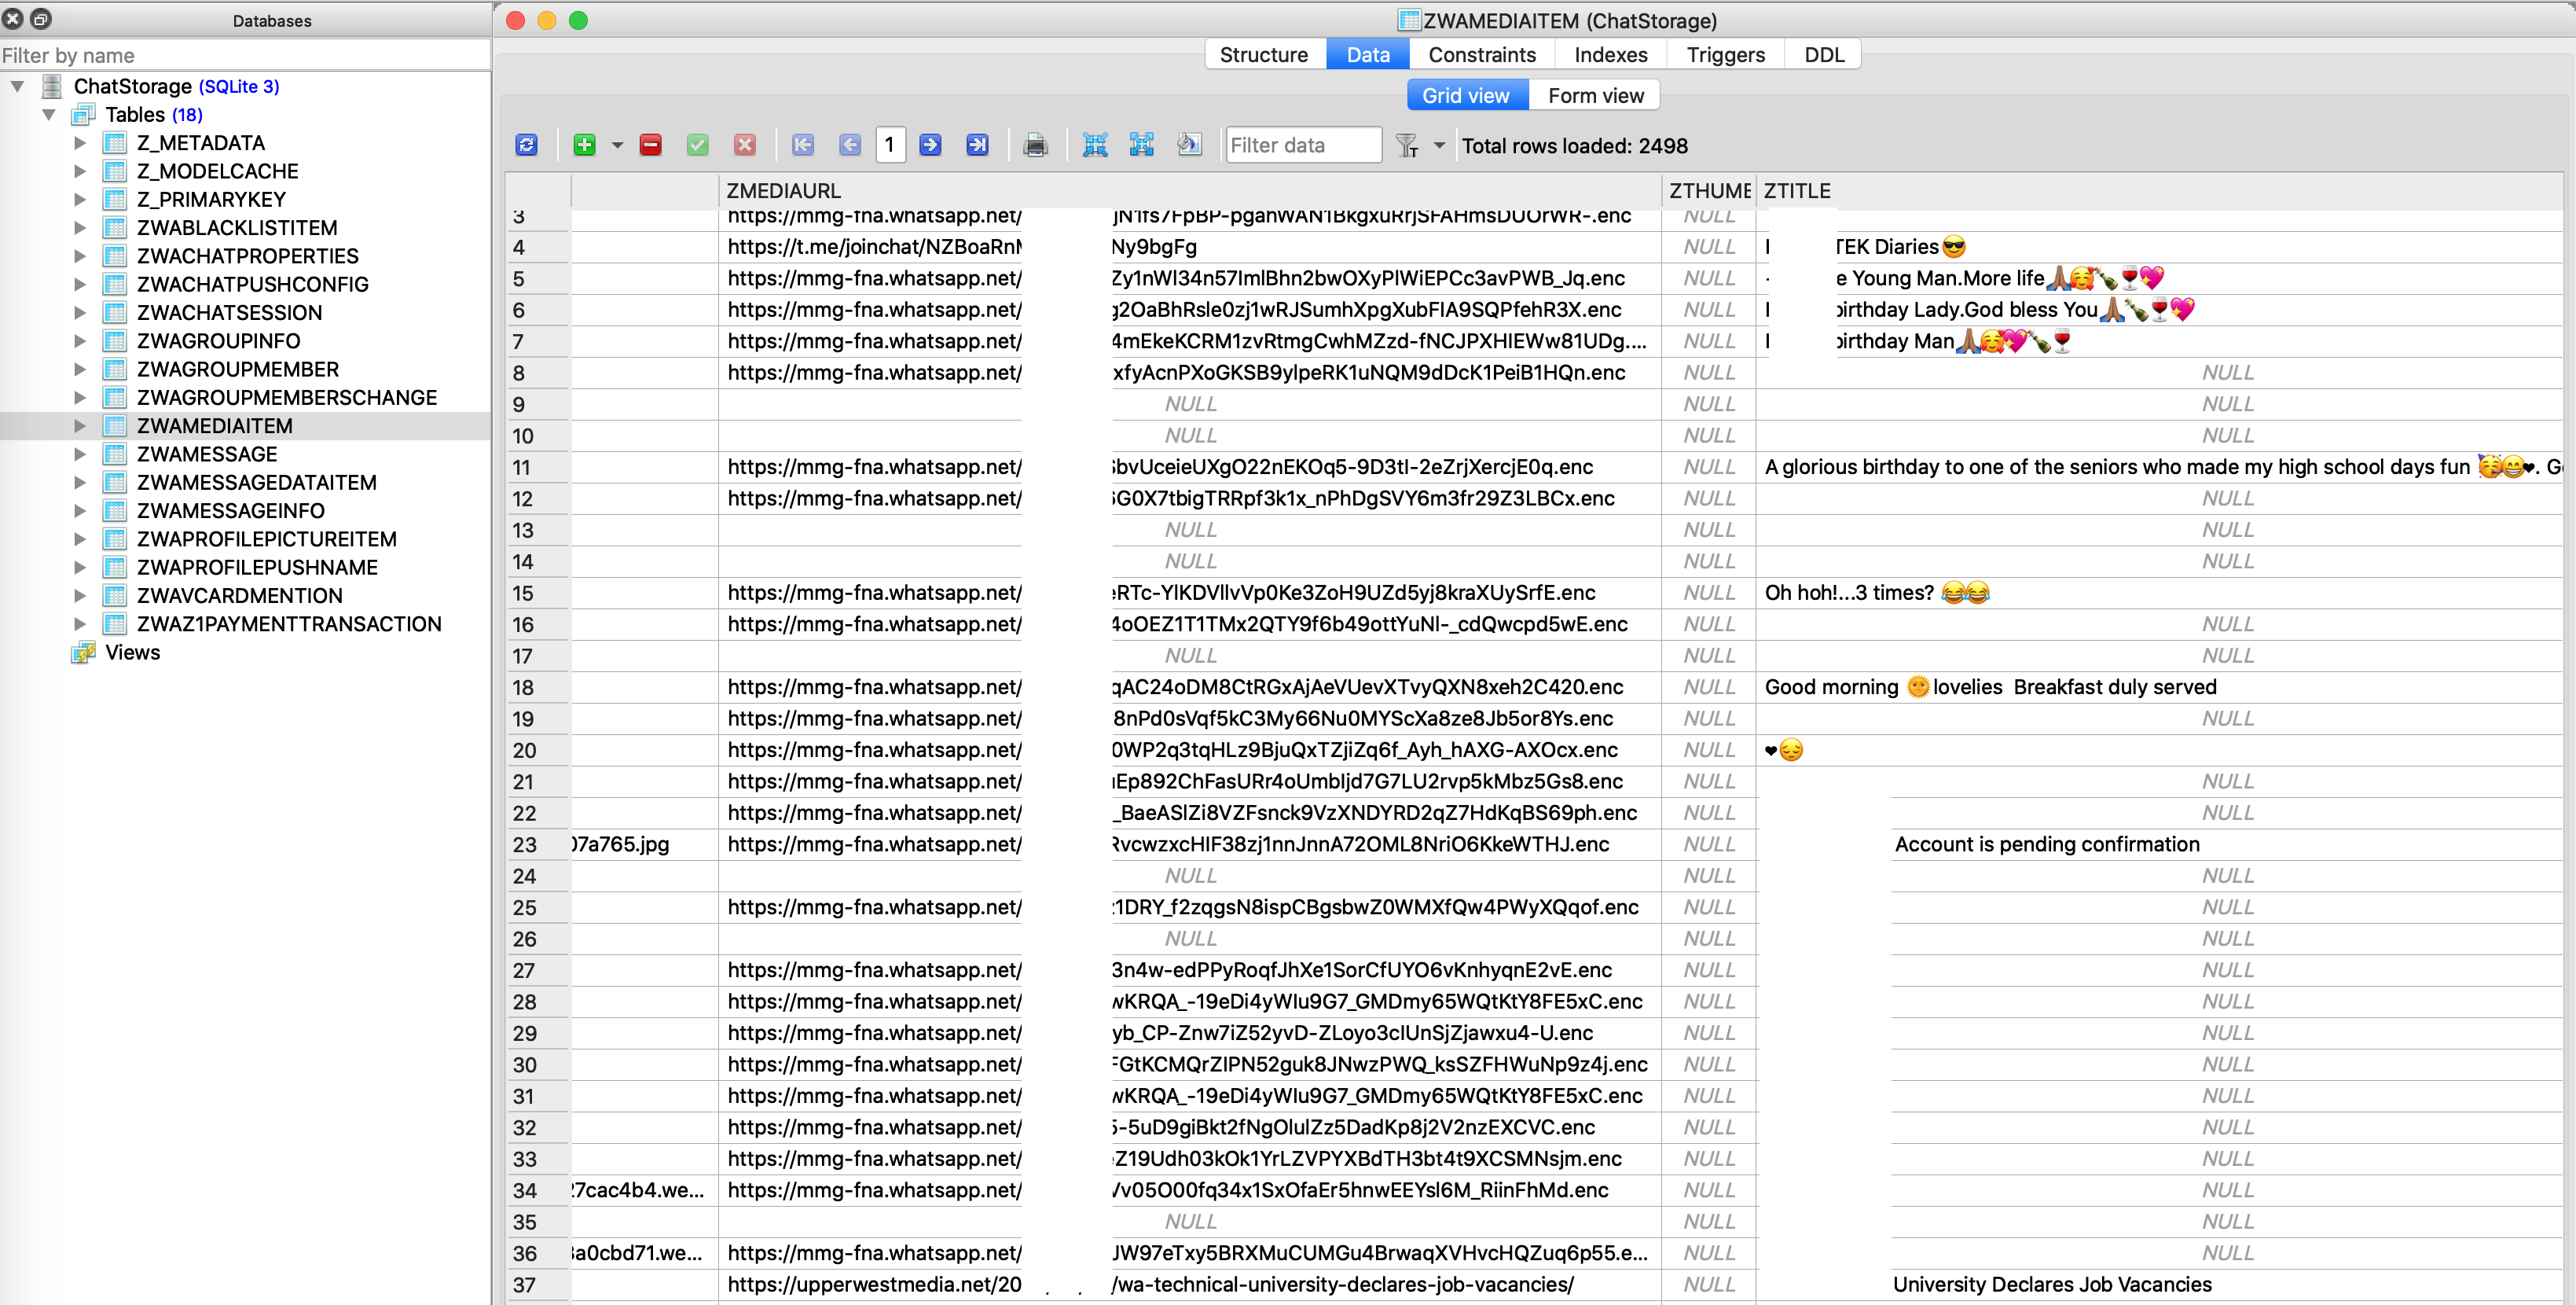 Links to Encrypted Shared or Received Images/Documents